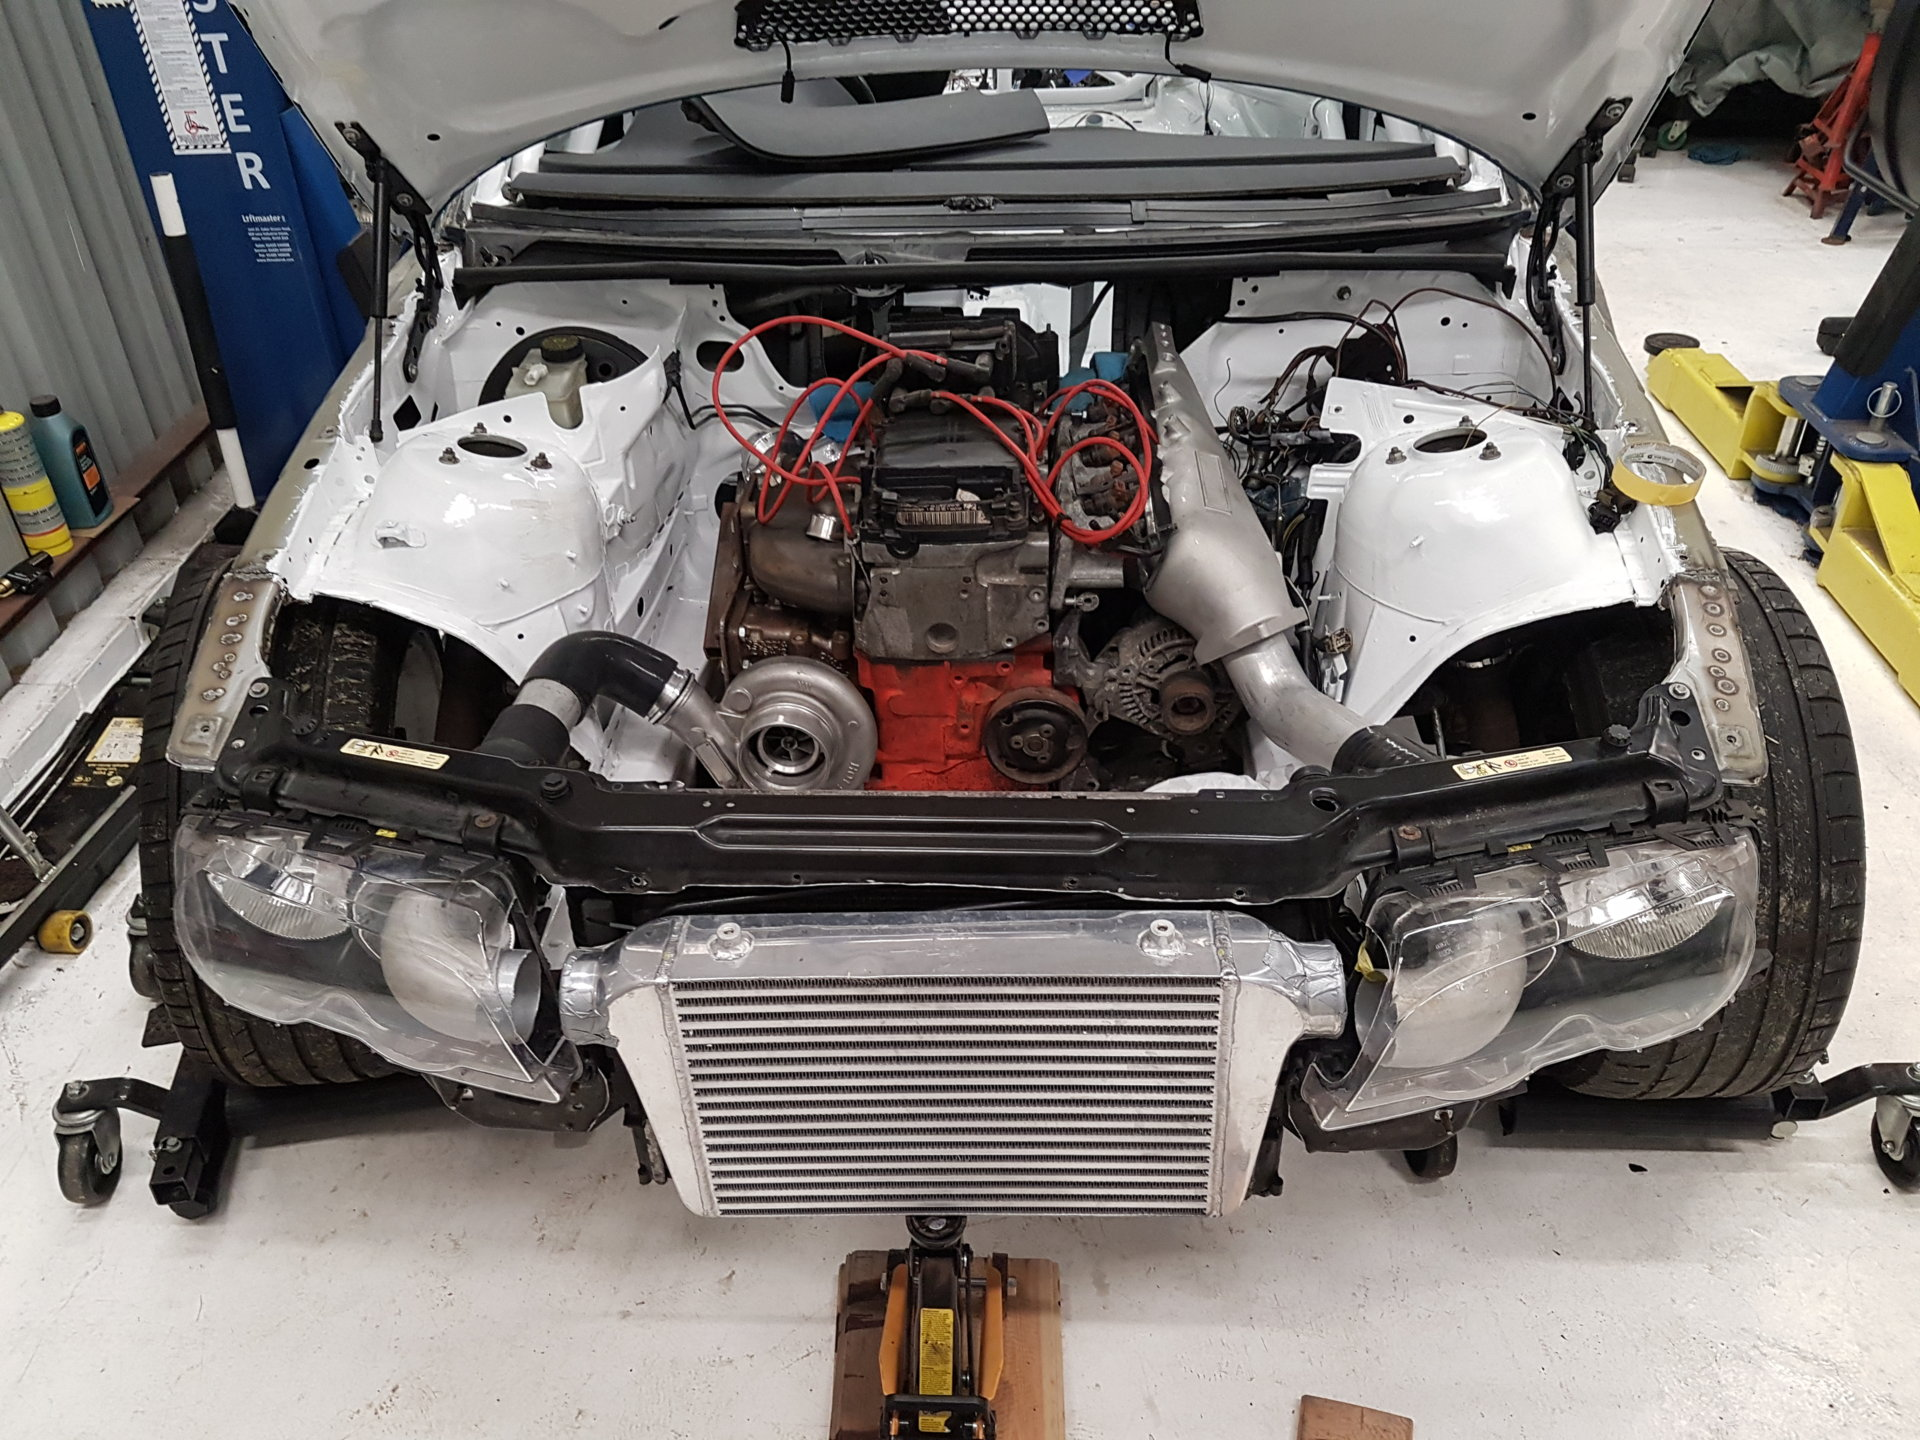 VR46 - BMW E46 VR6 Turbo | Driftworks Forum